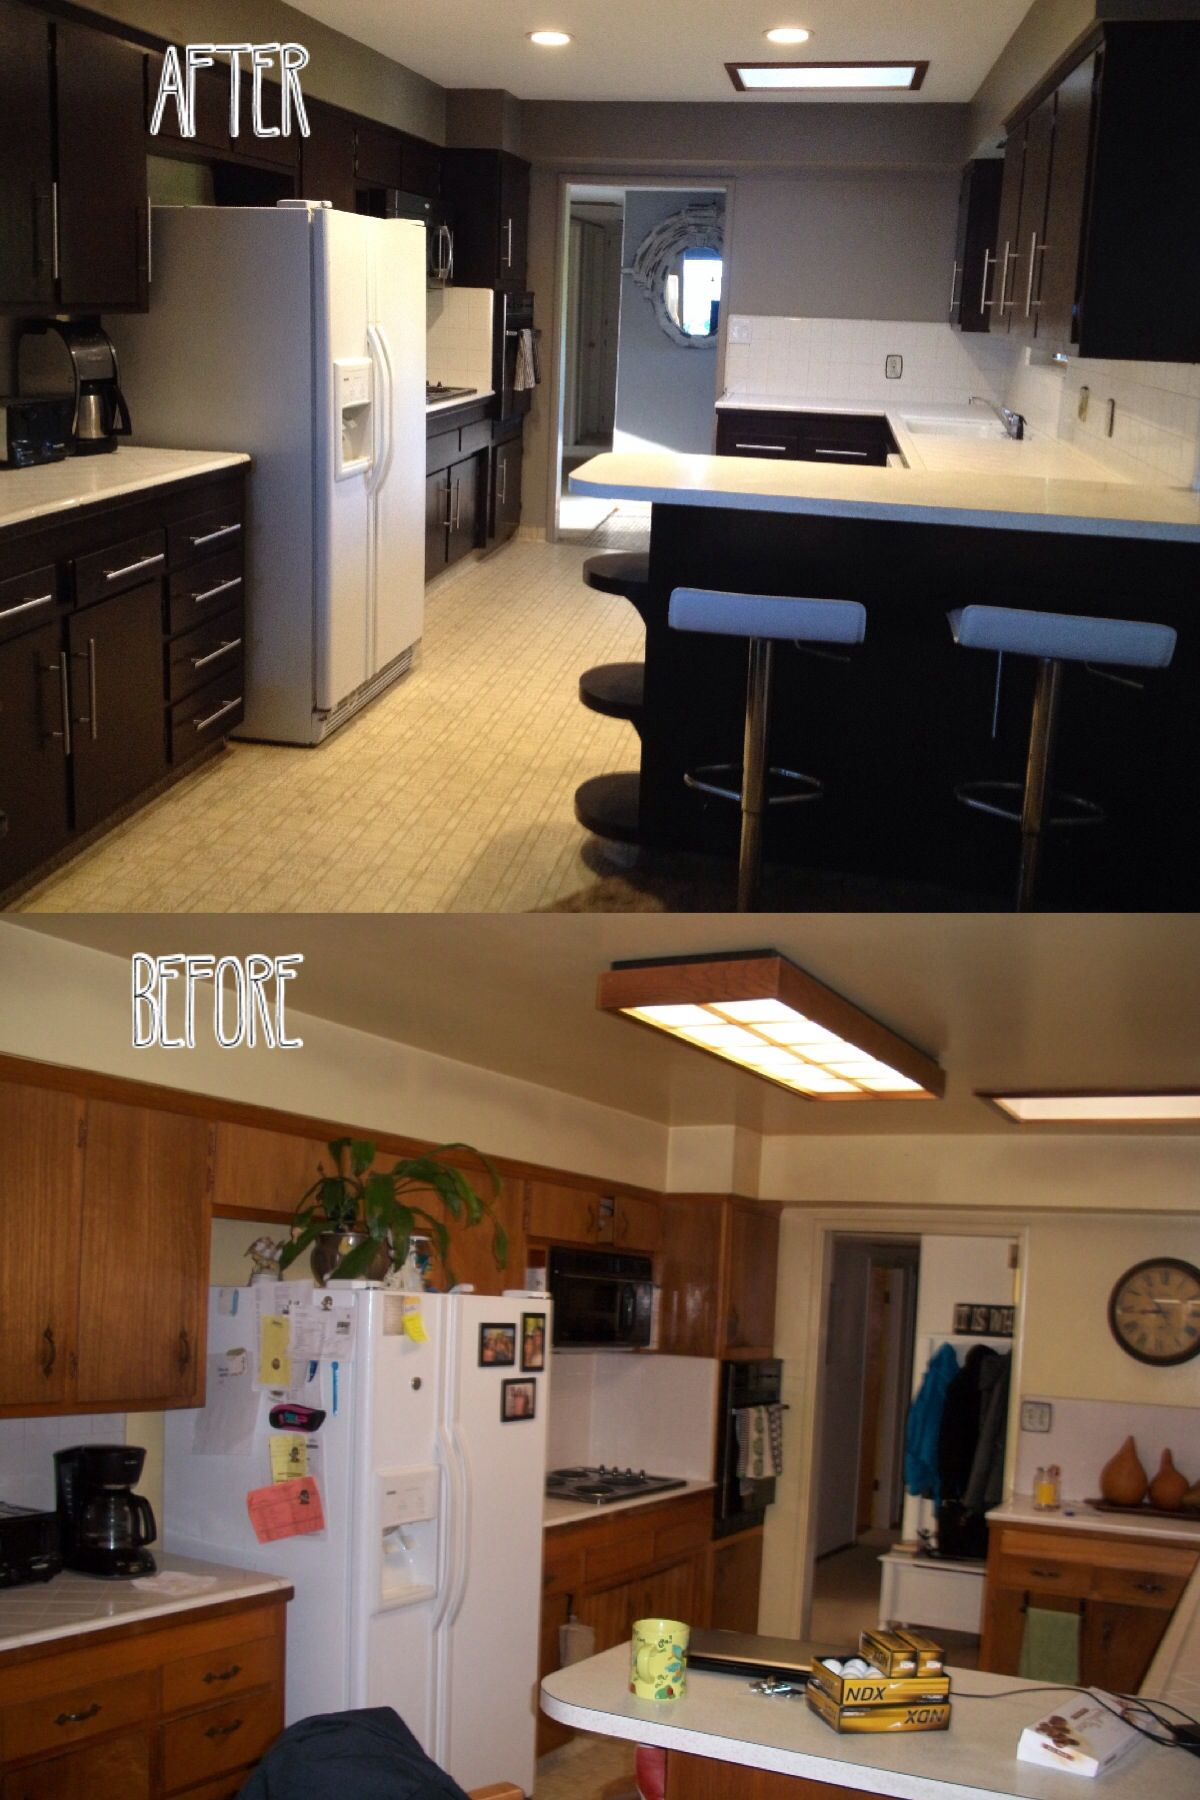 diy kitchen cabinet 1963 kitchen cabinets transformed with behr sweet molasses paint - Behr Paint Kitchen Cabinets